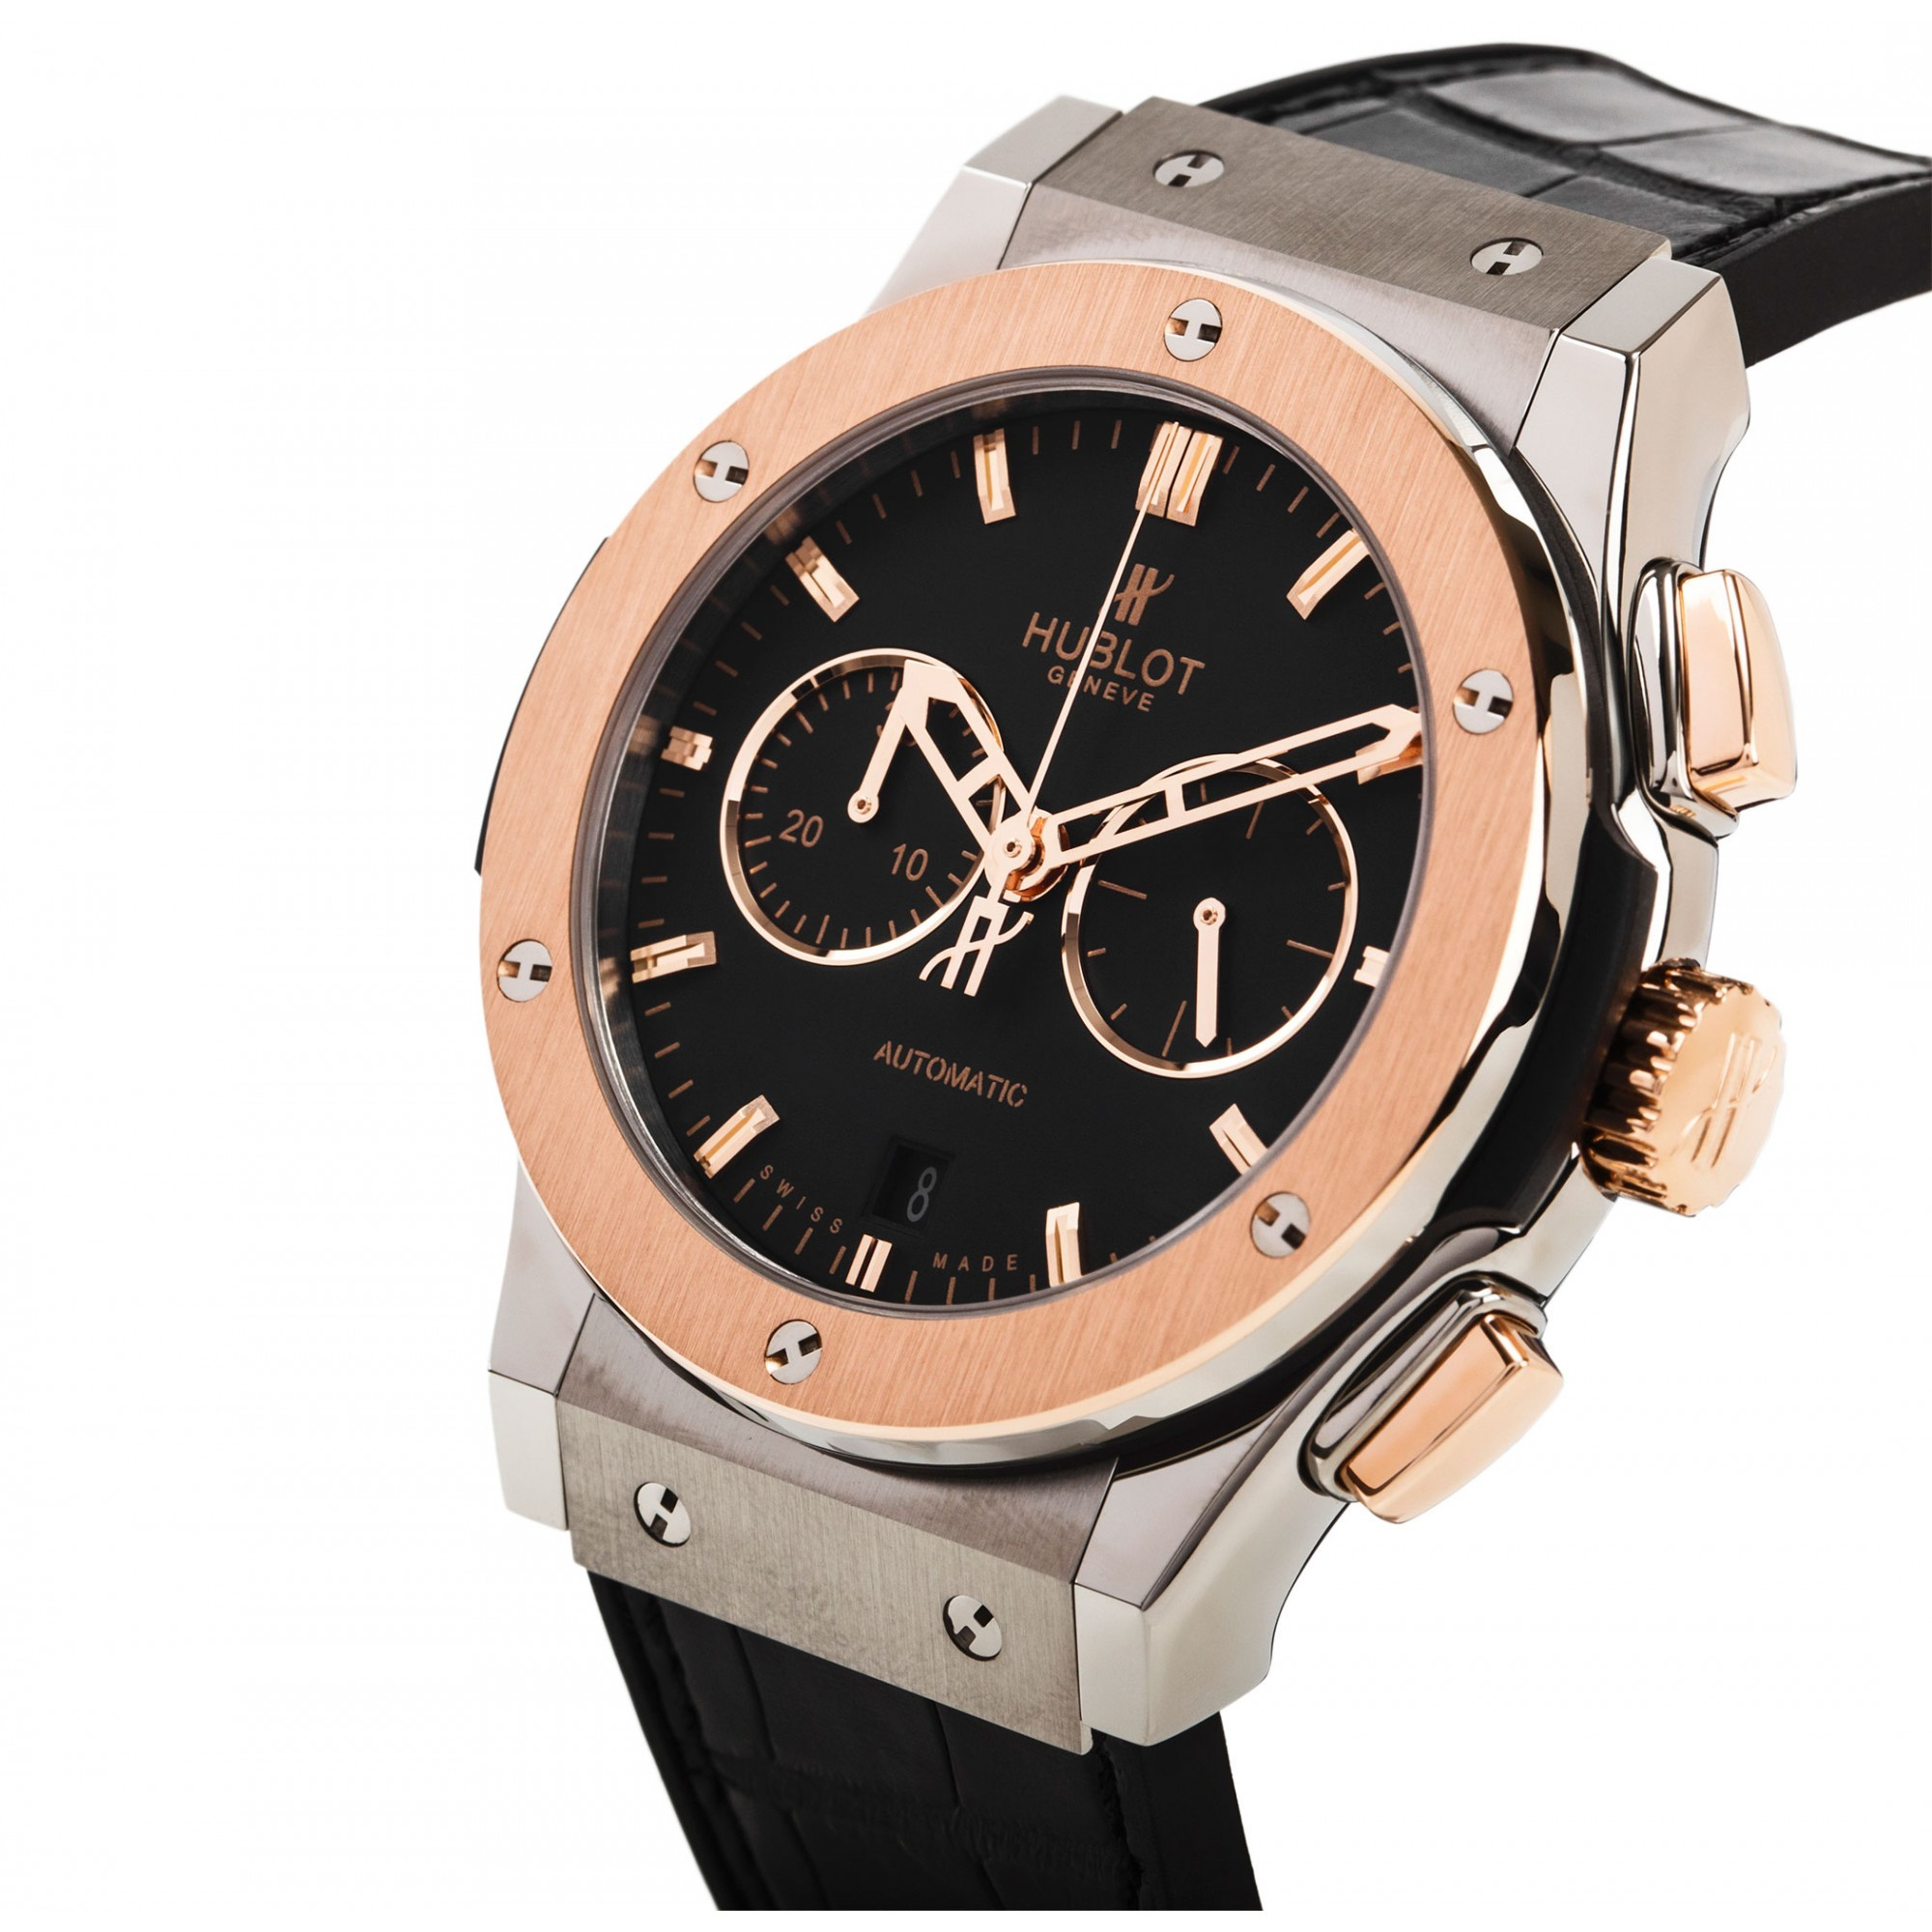 15 Hublot Classic Fusion Watches - Best Models Reviewed 2019 e519f0241a7c